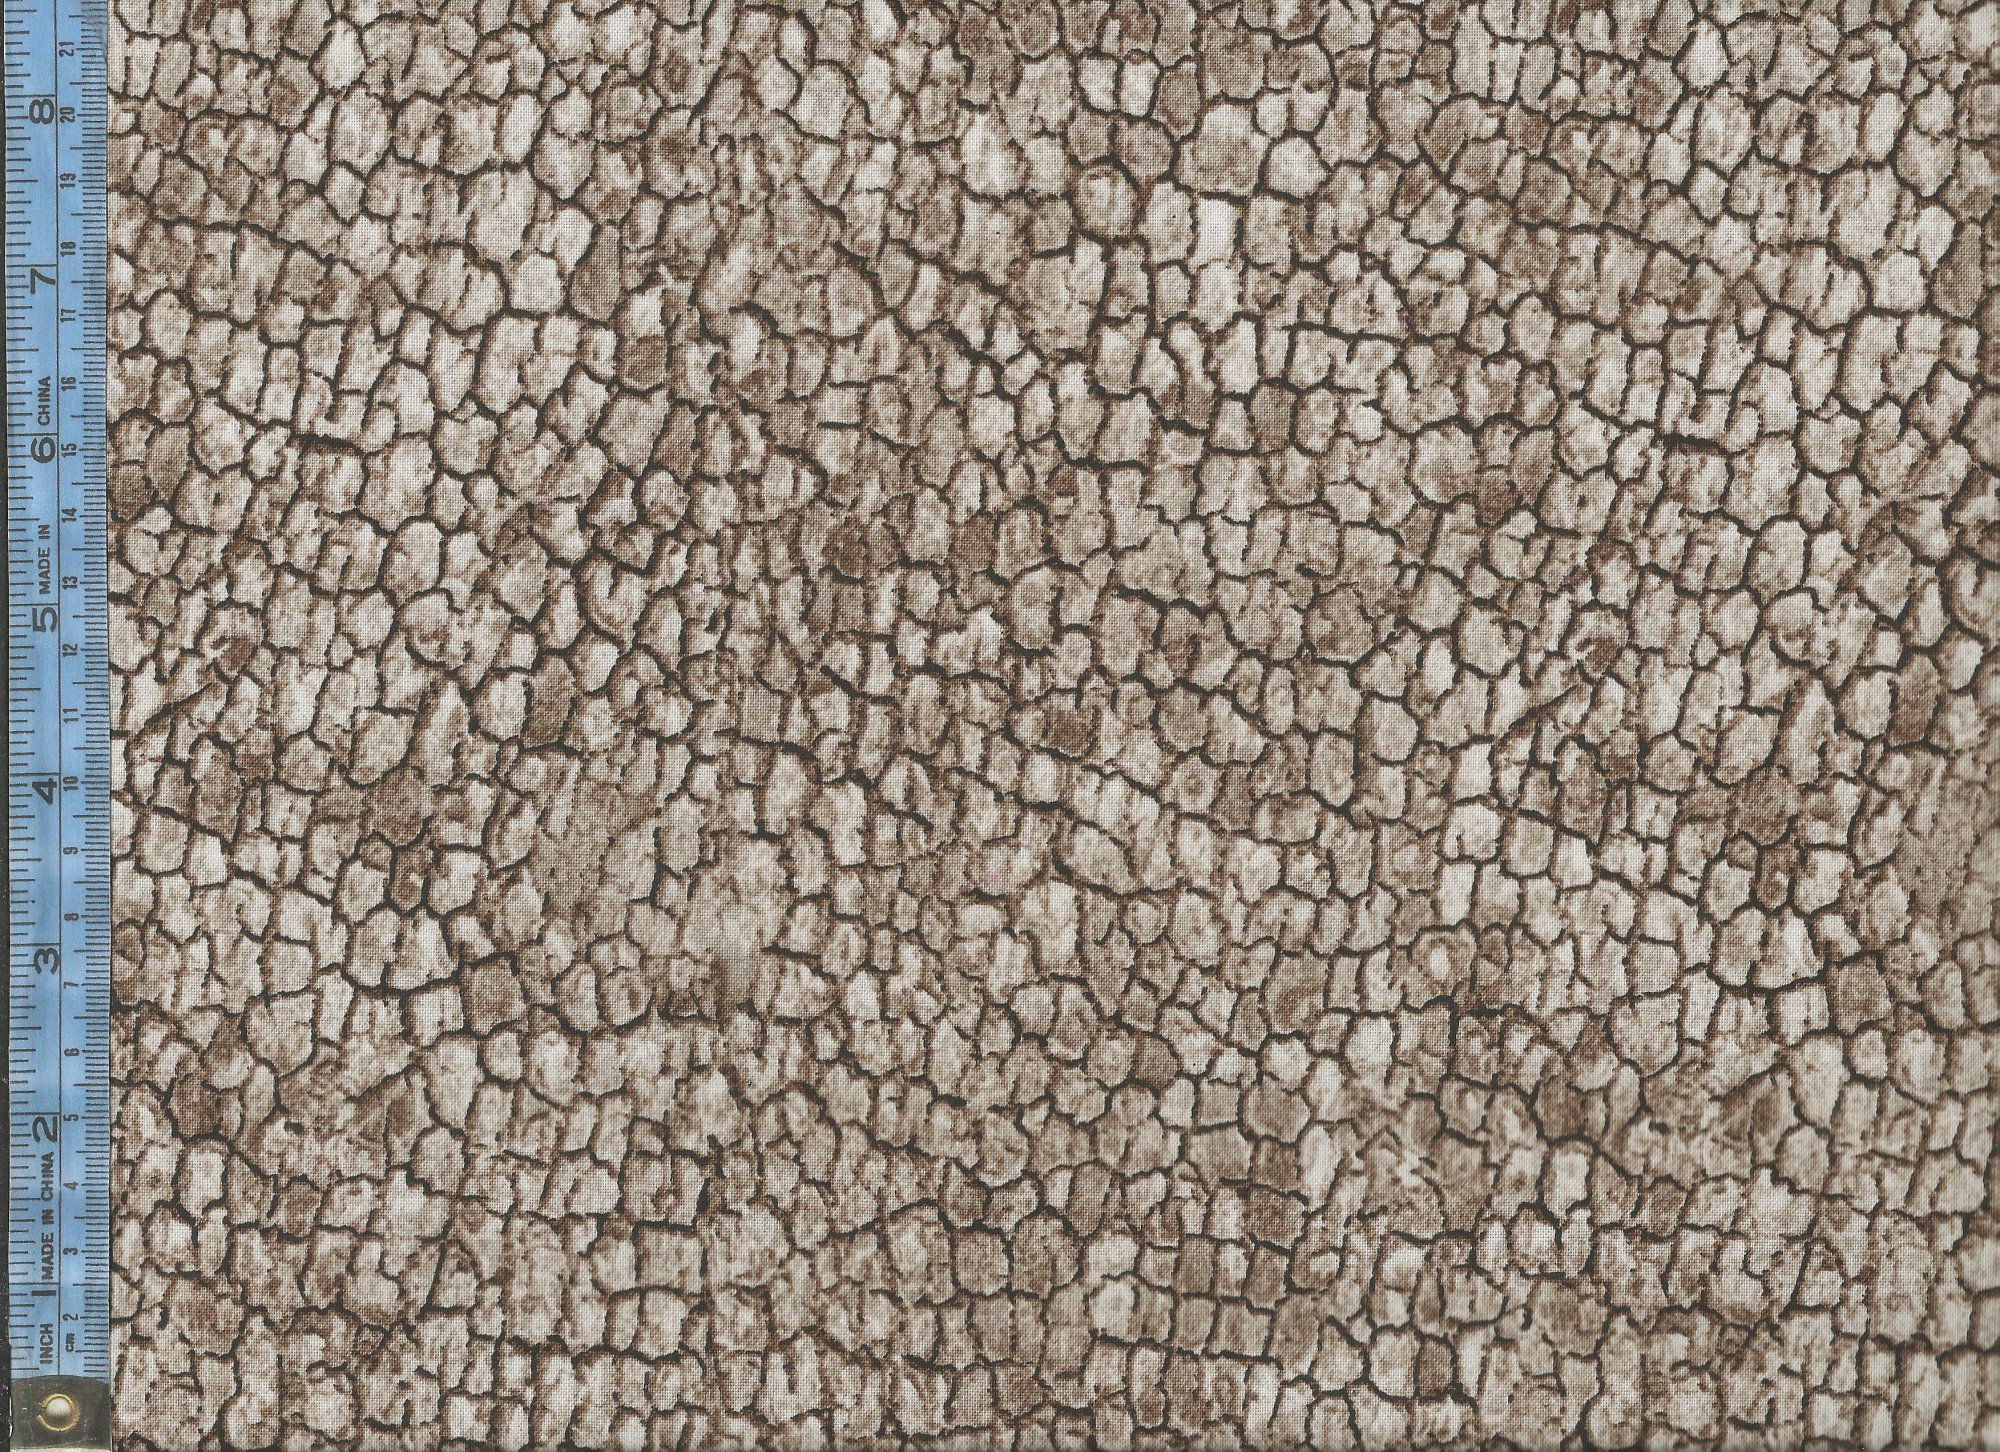 Naturescapes - (21402-34-neutral) natural cracked dirt